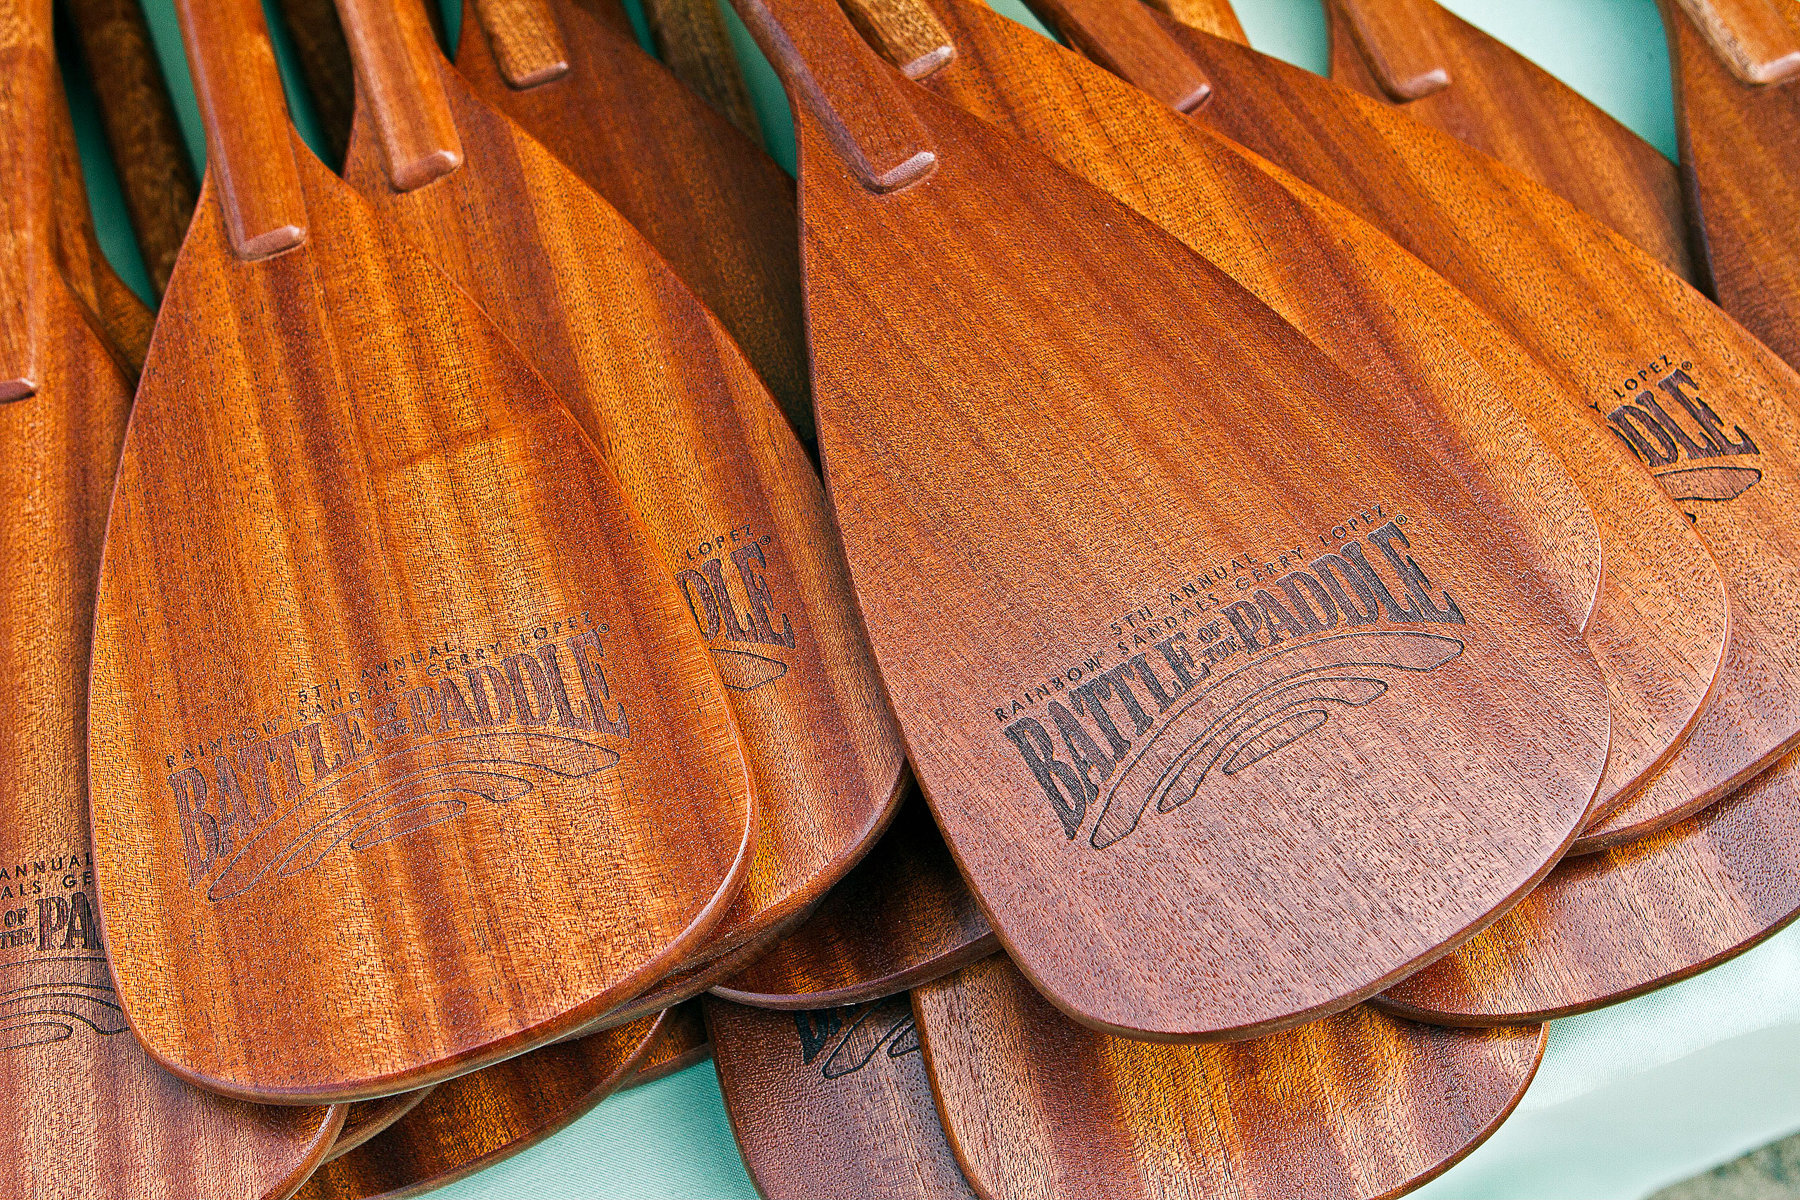 Dana Point, CA - September 30: Wooden paddle awards grace a table during the Battle of the Paddle, on September 30, 2012 at Doheny Beach in Dana Point, California.